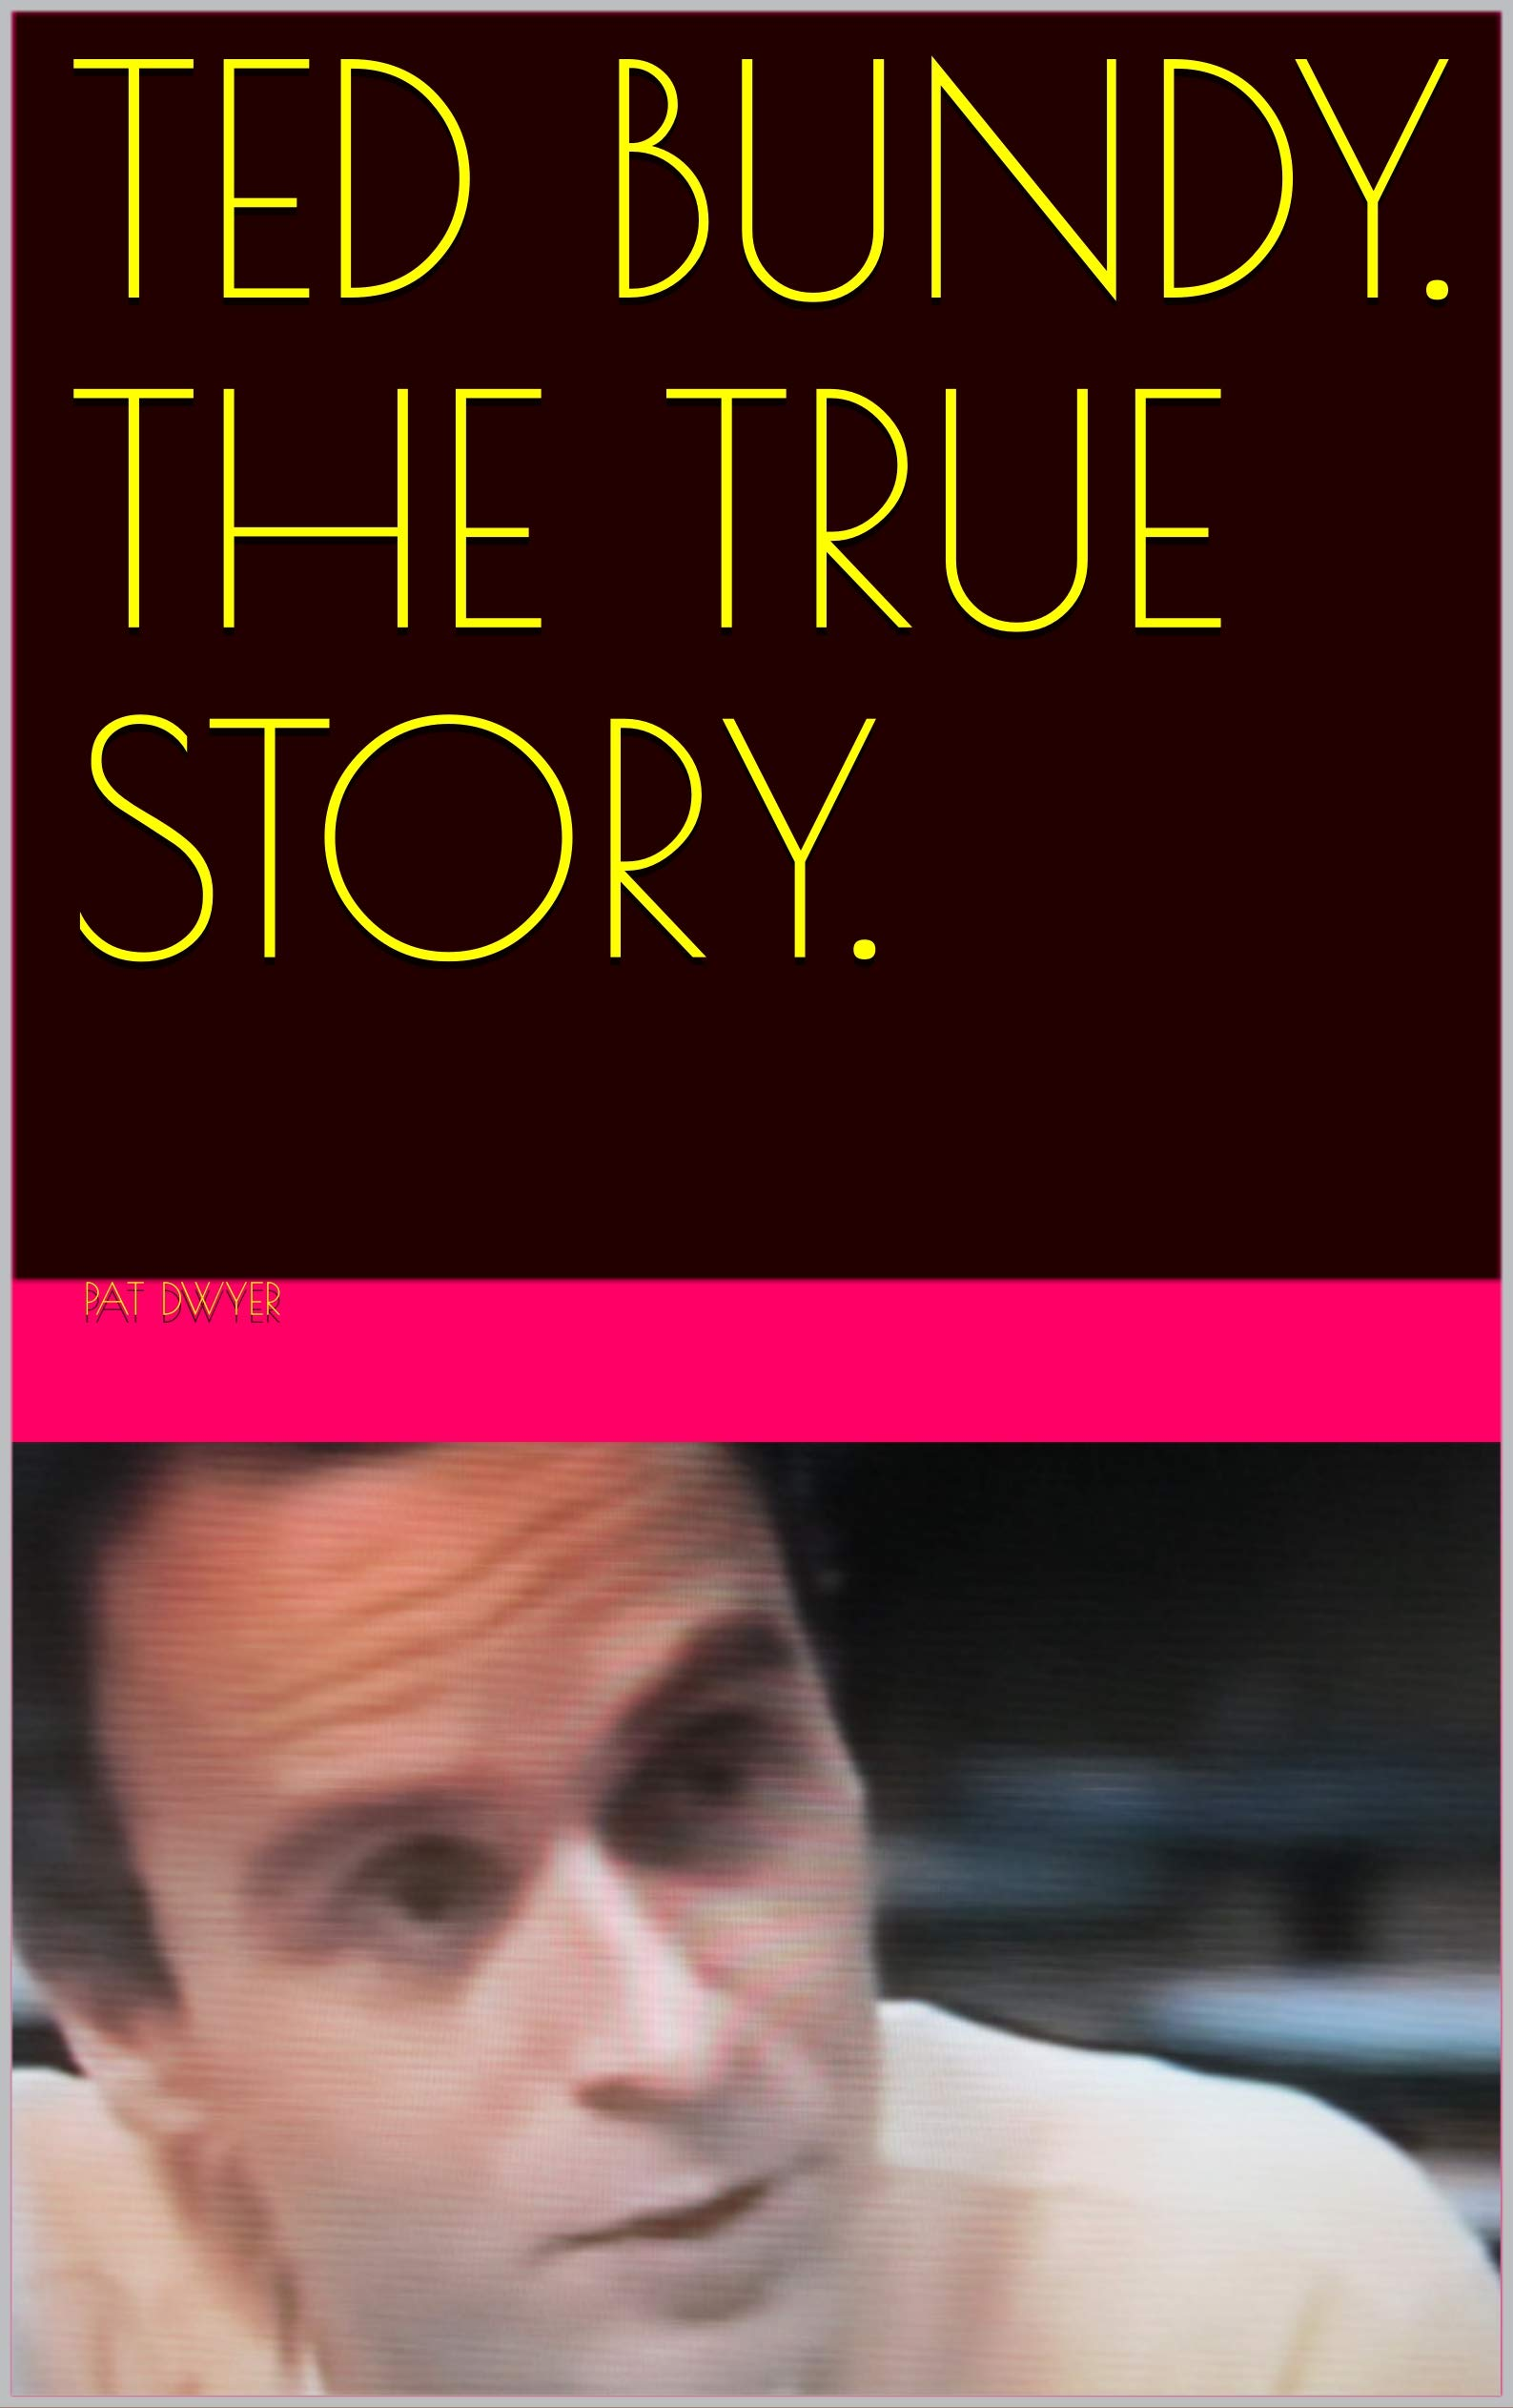 TED BUNDY. THE TRUE STORY.